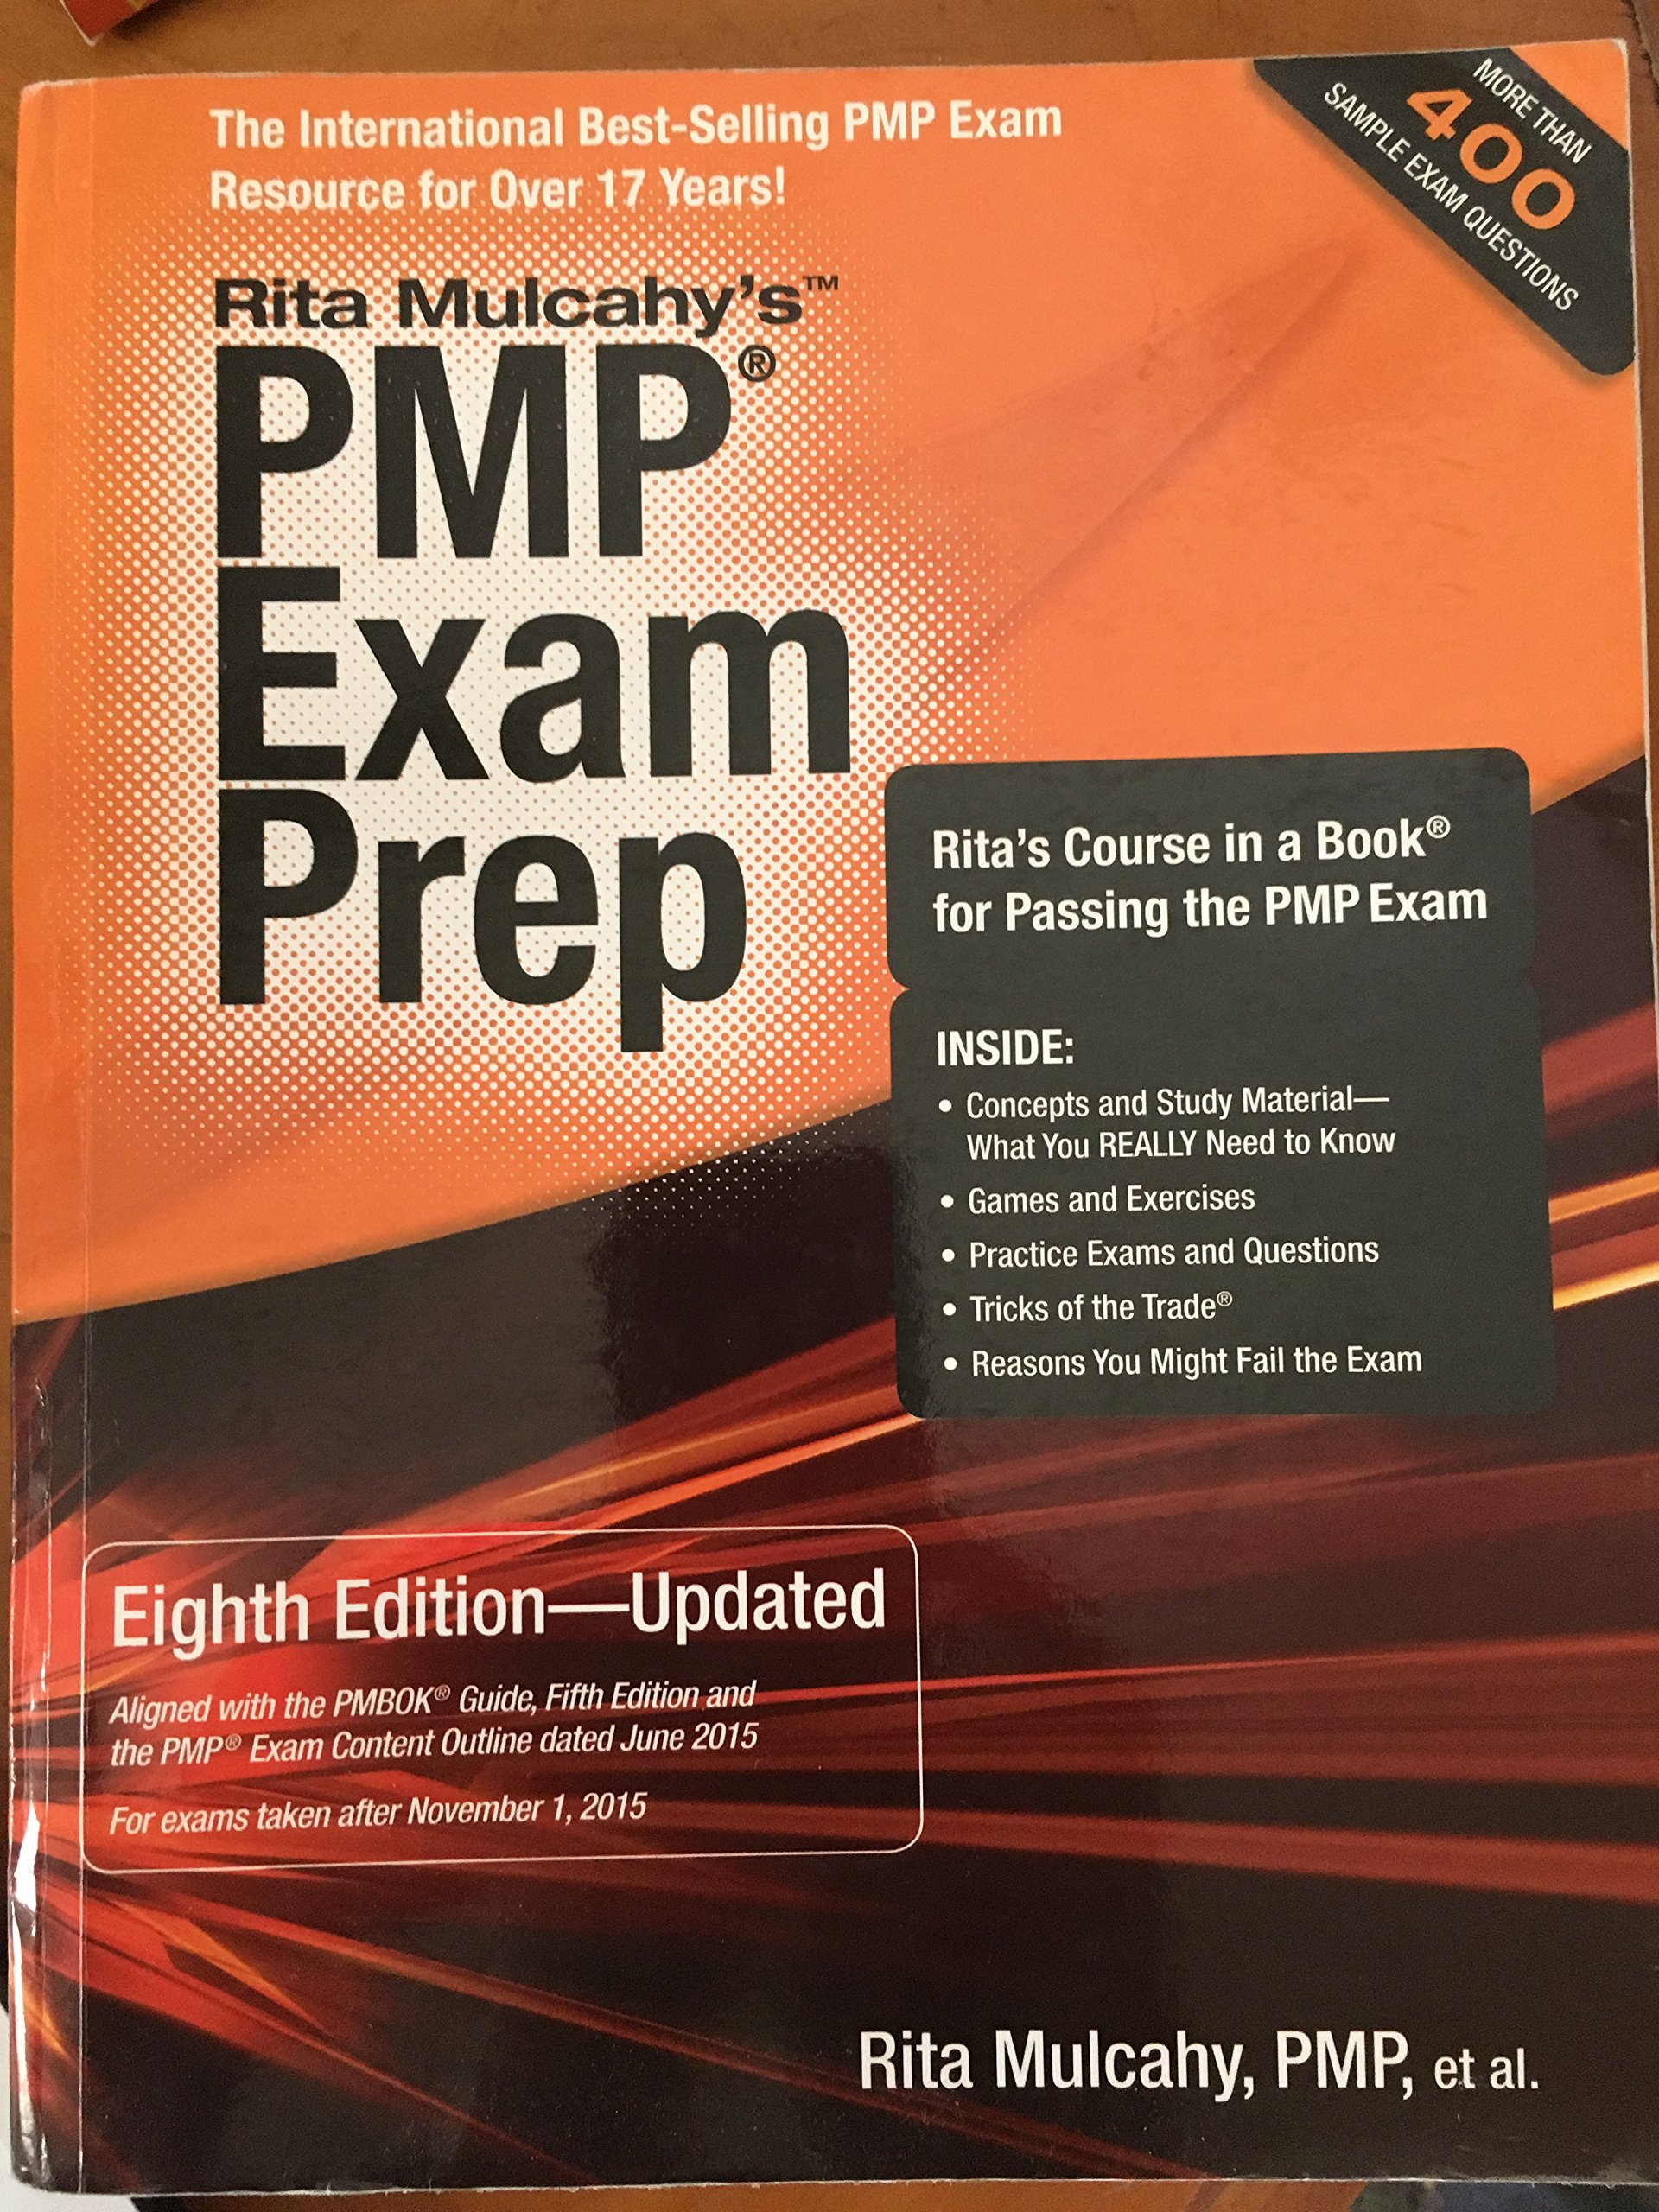 PMP Exam Prep, Eighth Edition - Updated: Rita's Course in a Book for  Passing the PMP Exam by Rita Mulcahy (June 12, 2013) Paperback Eighth:  Amazon.com: ...